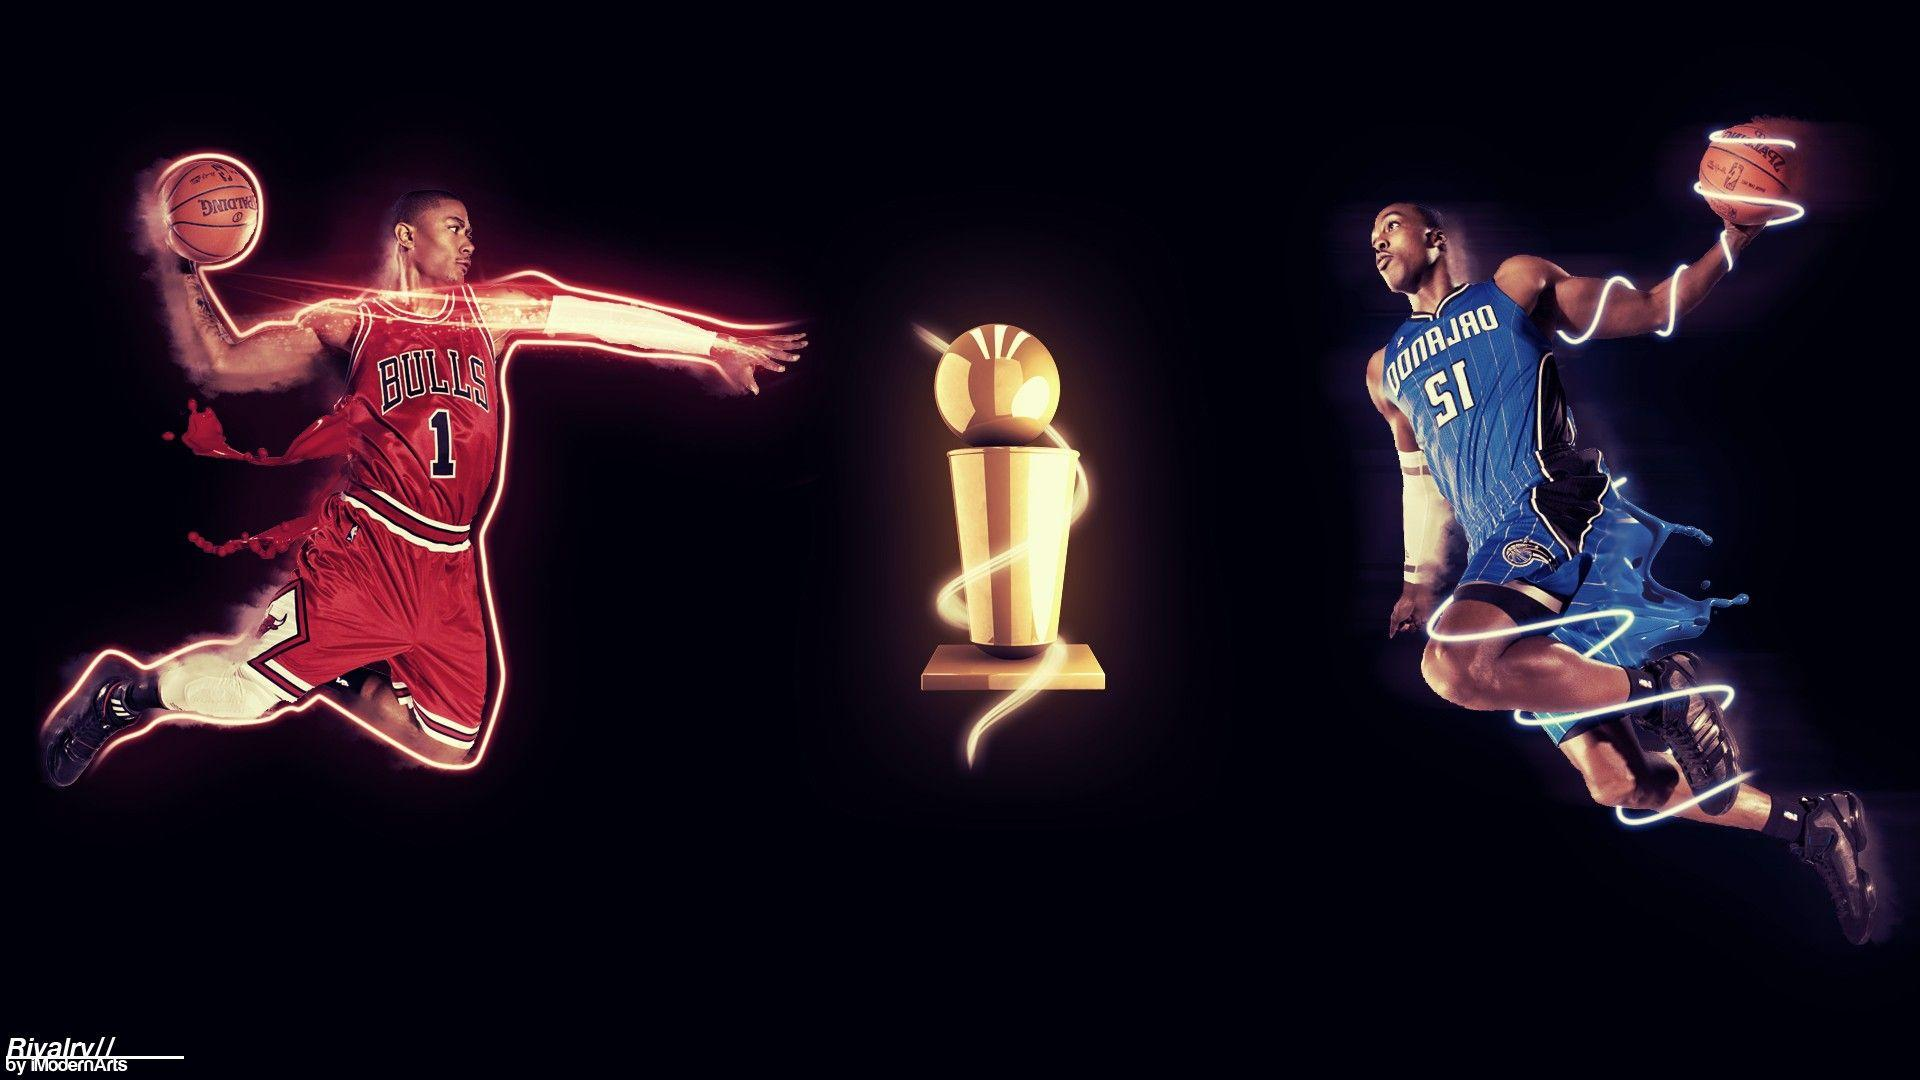 Cool basketball wallpapers wallpaper cave - Cool basketball wallpapers hd ...